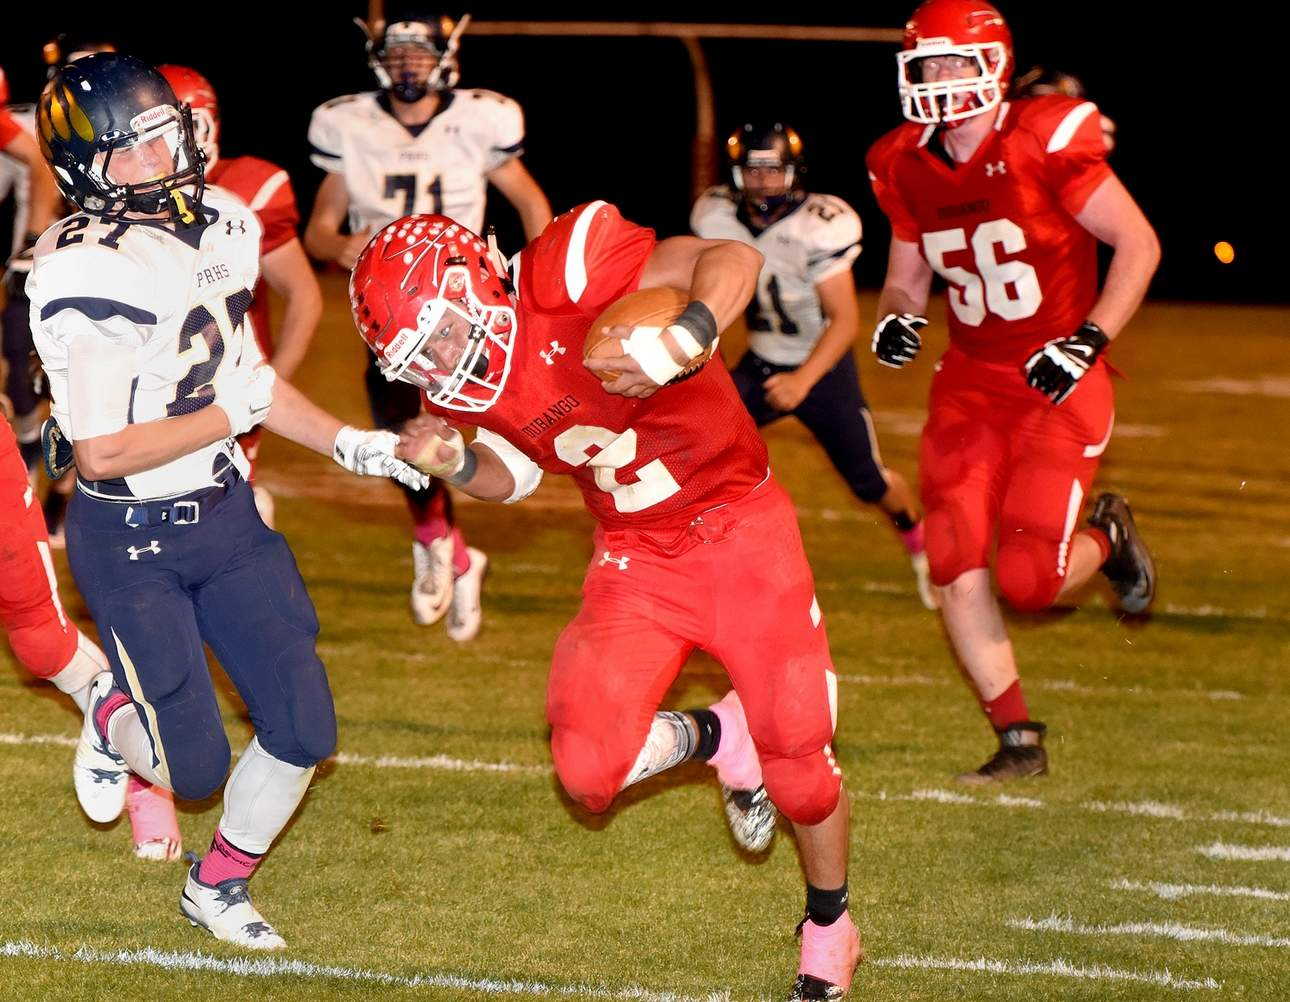 no durango football hopes to take the air out of air academy after being held to less than 100 yards last week for the first time all season durango high school senior running back lawrence berry will hope for